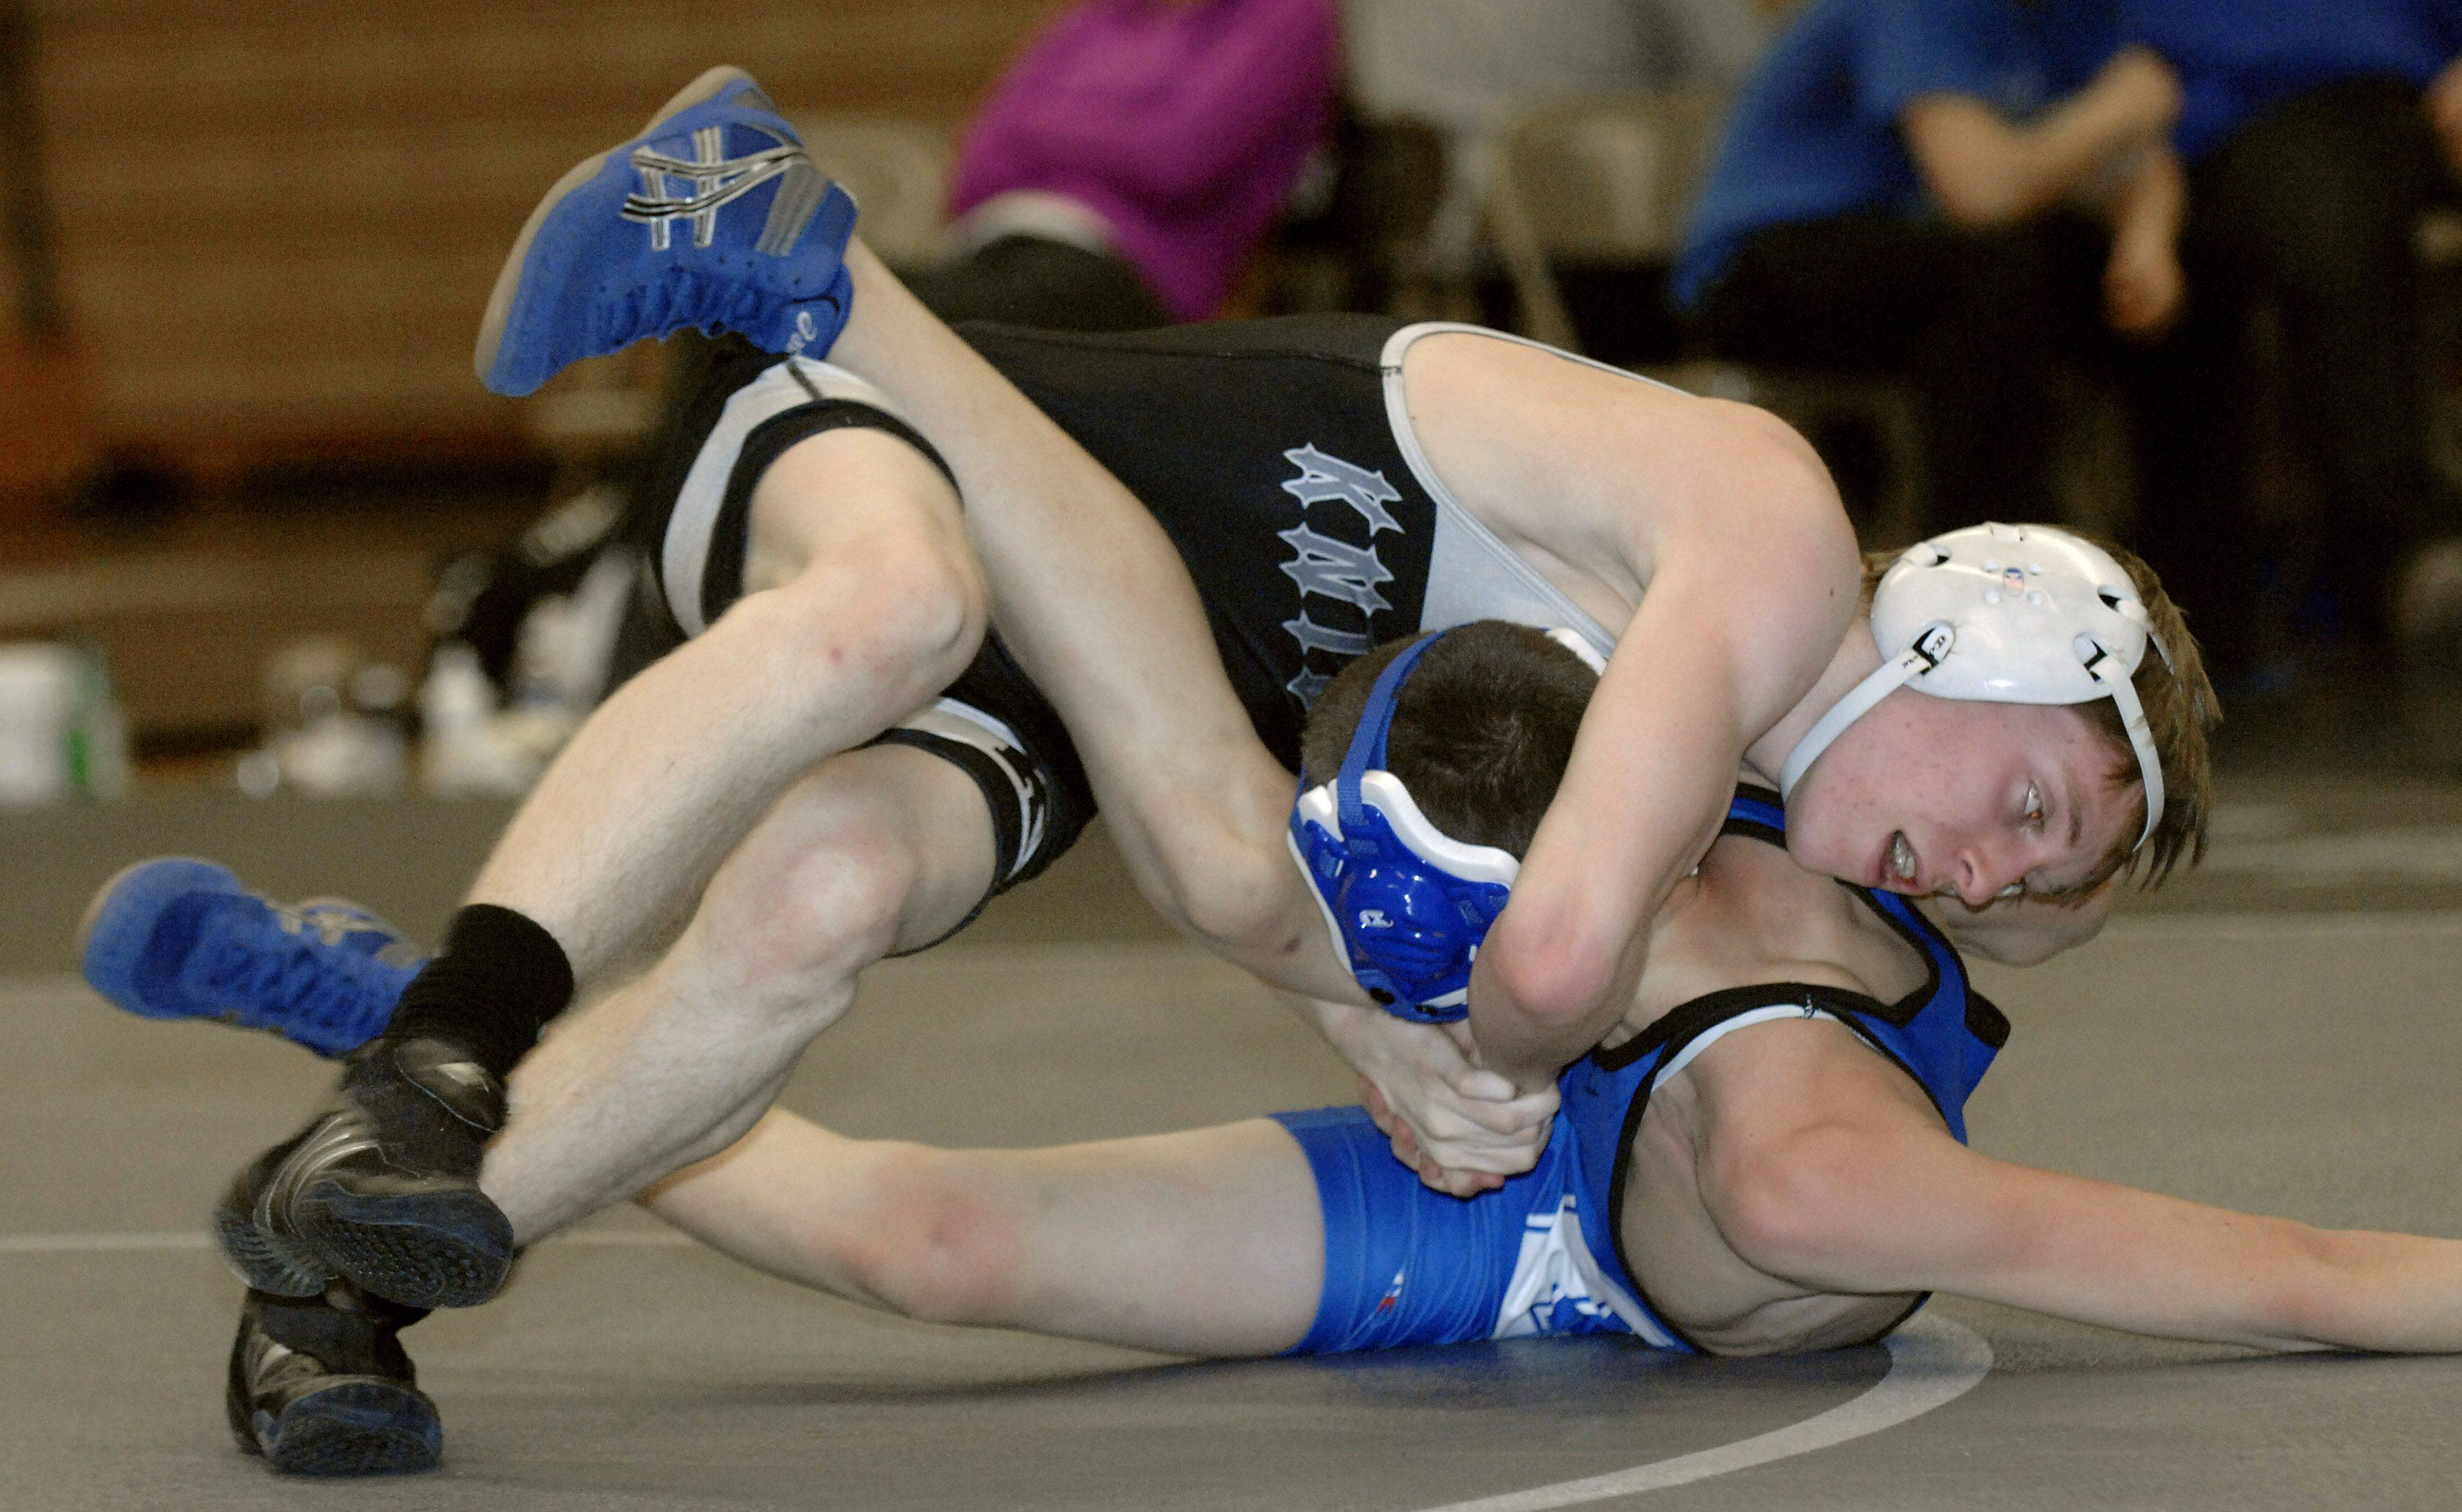 Kaneland's Steve Gust and Geneva's Chris Davis in the 106 match on Saturday, December 17. Davis turn the match around to take the win.